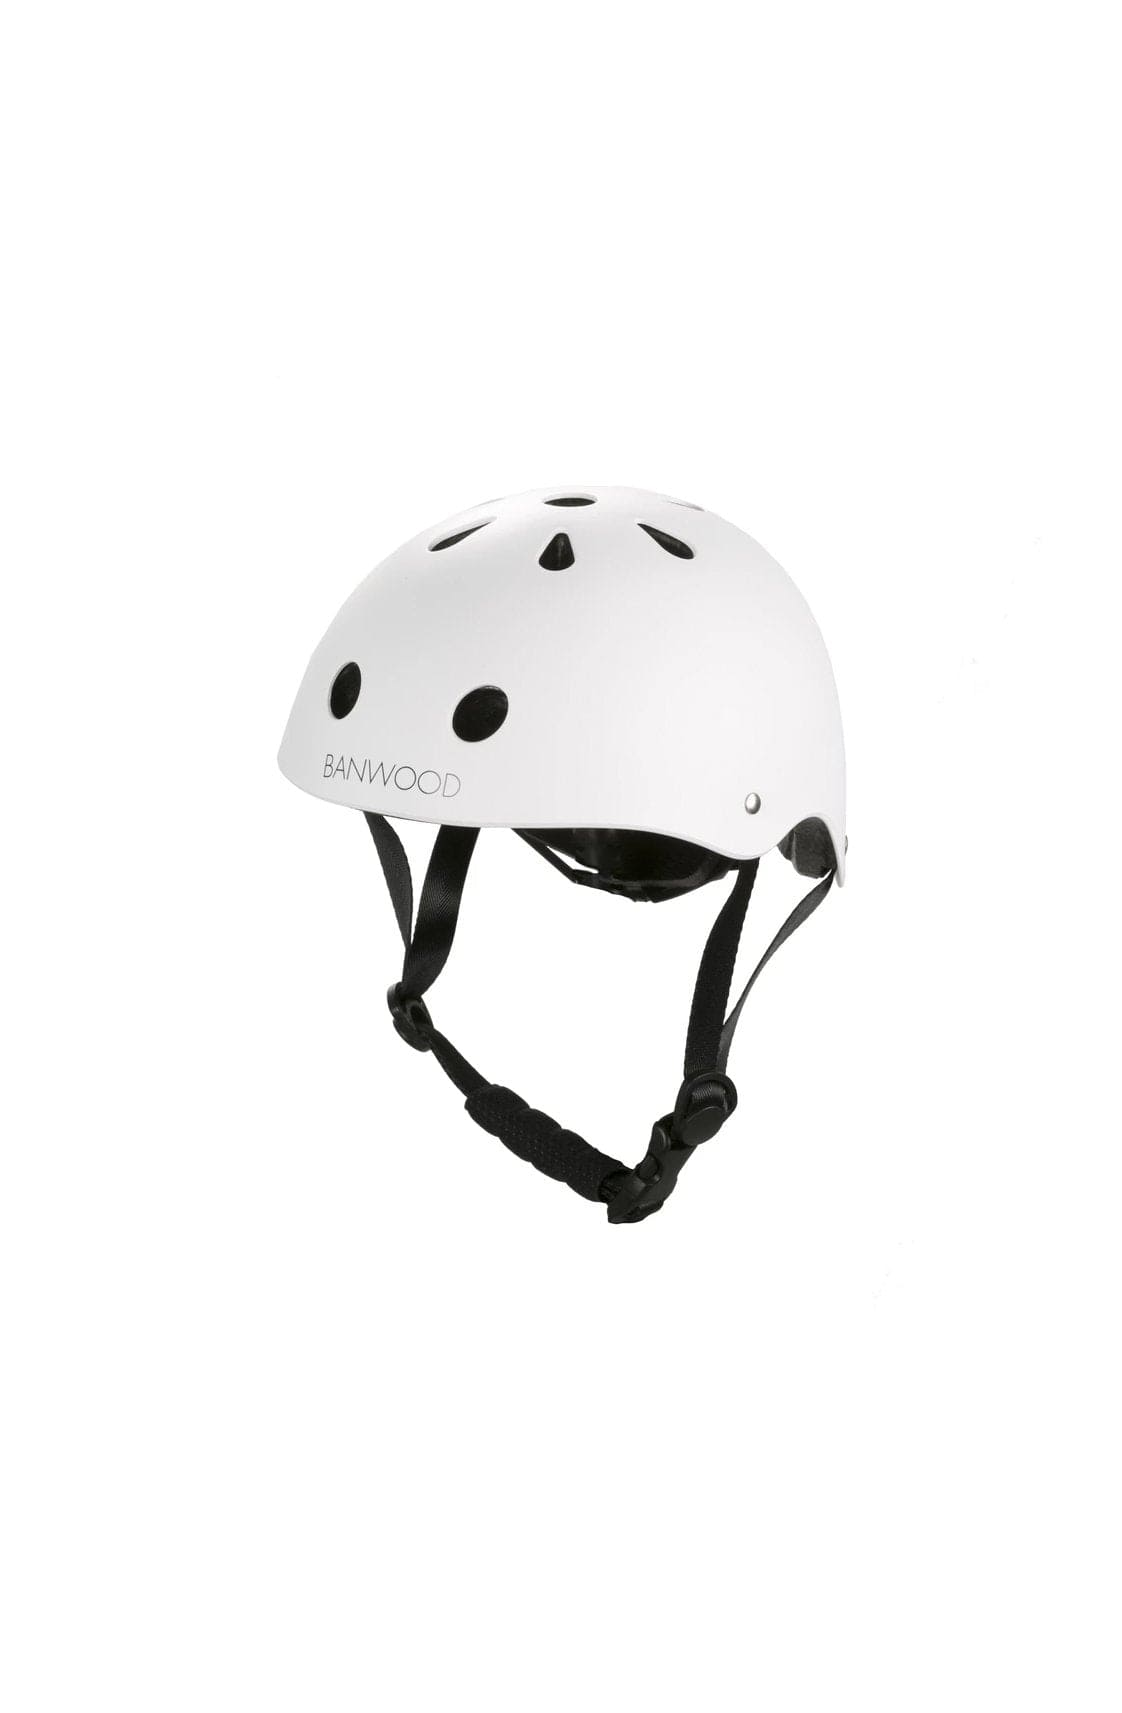 BANWOOD CLASSIC HELMET MATTE WHITE - Hello Little Birdie